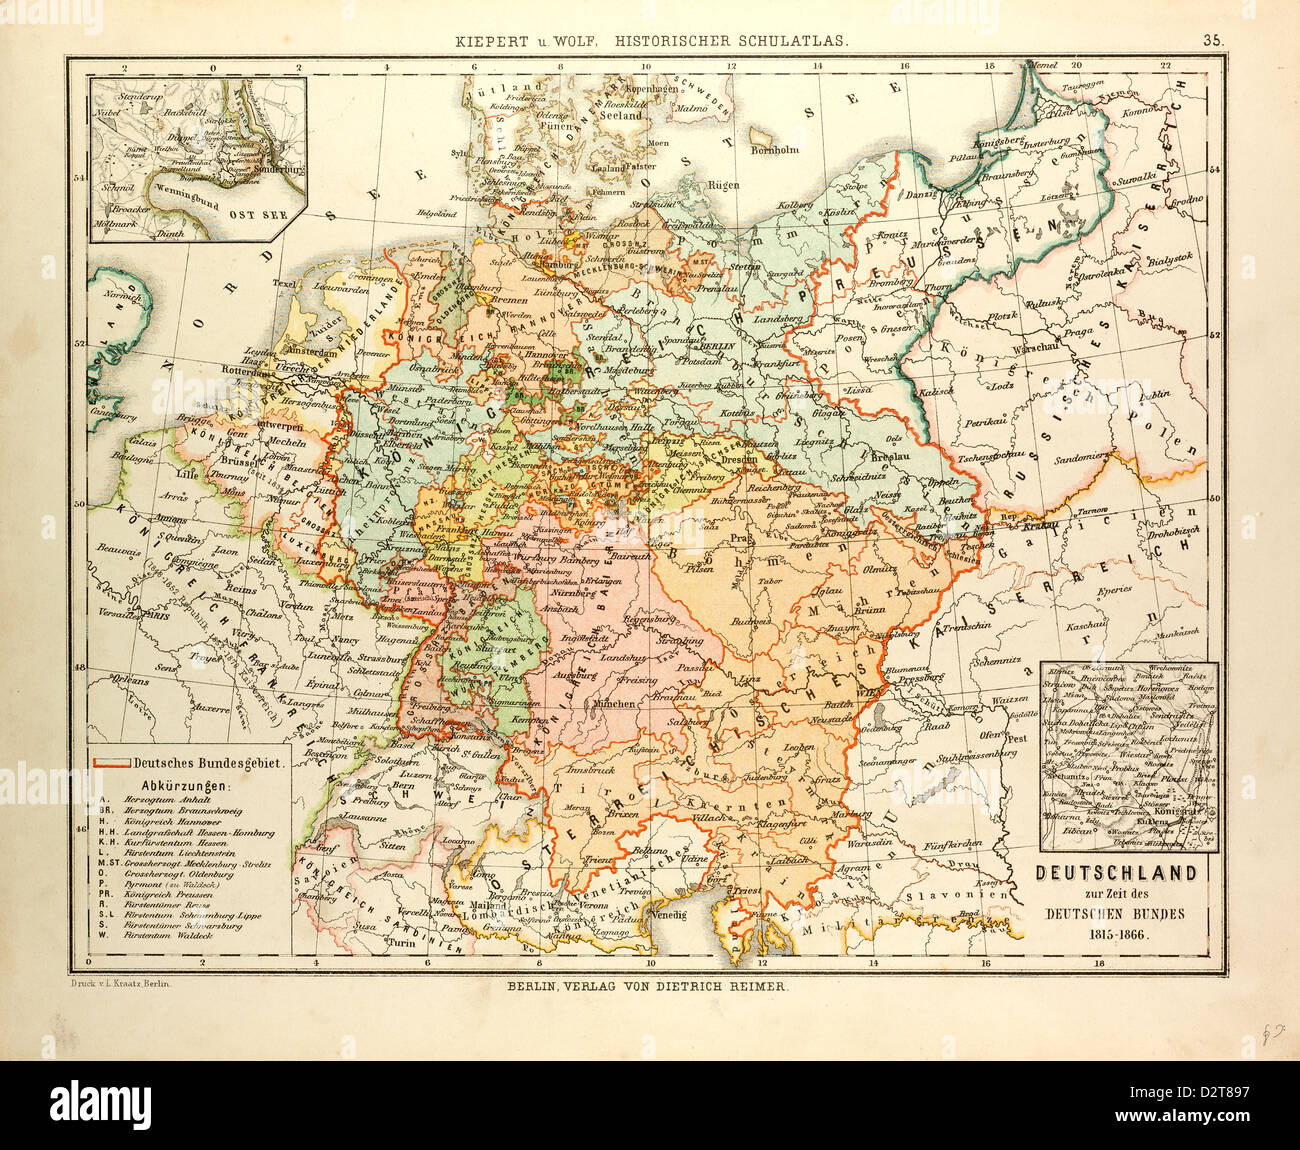 Map Of Germany 1815.Map Of Germany 1815 1866 Stock Photo 53393795 Alamy